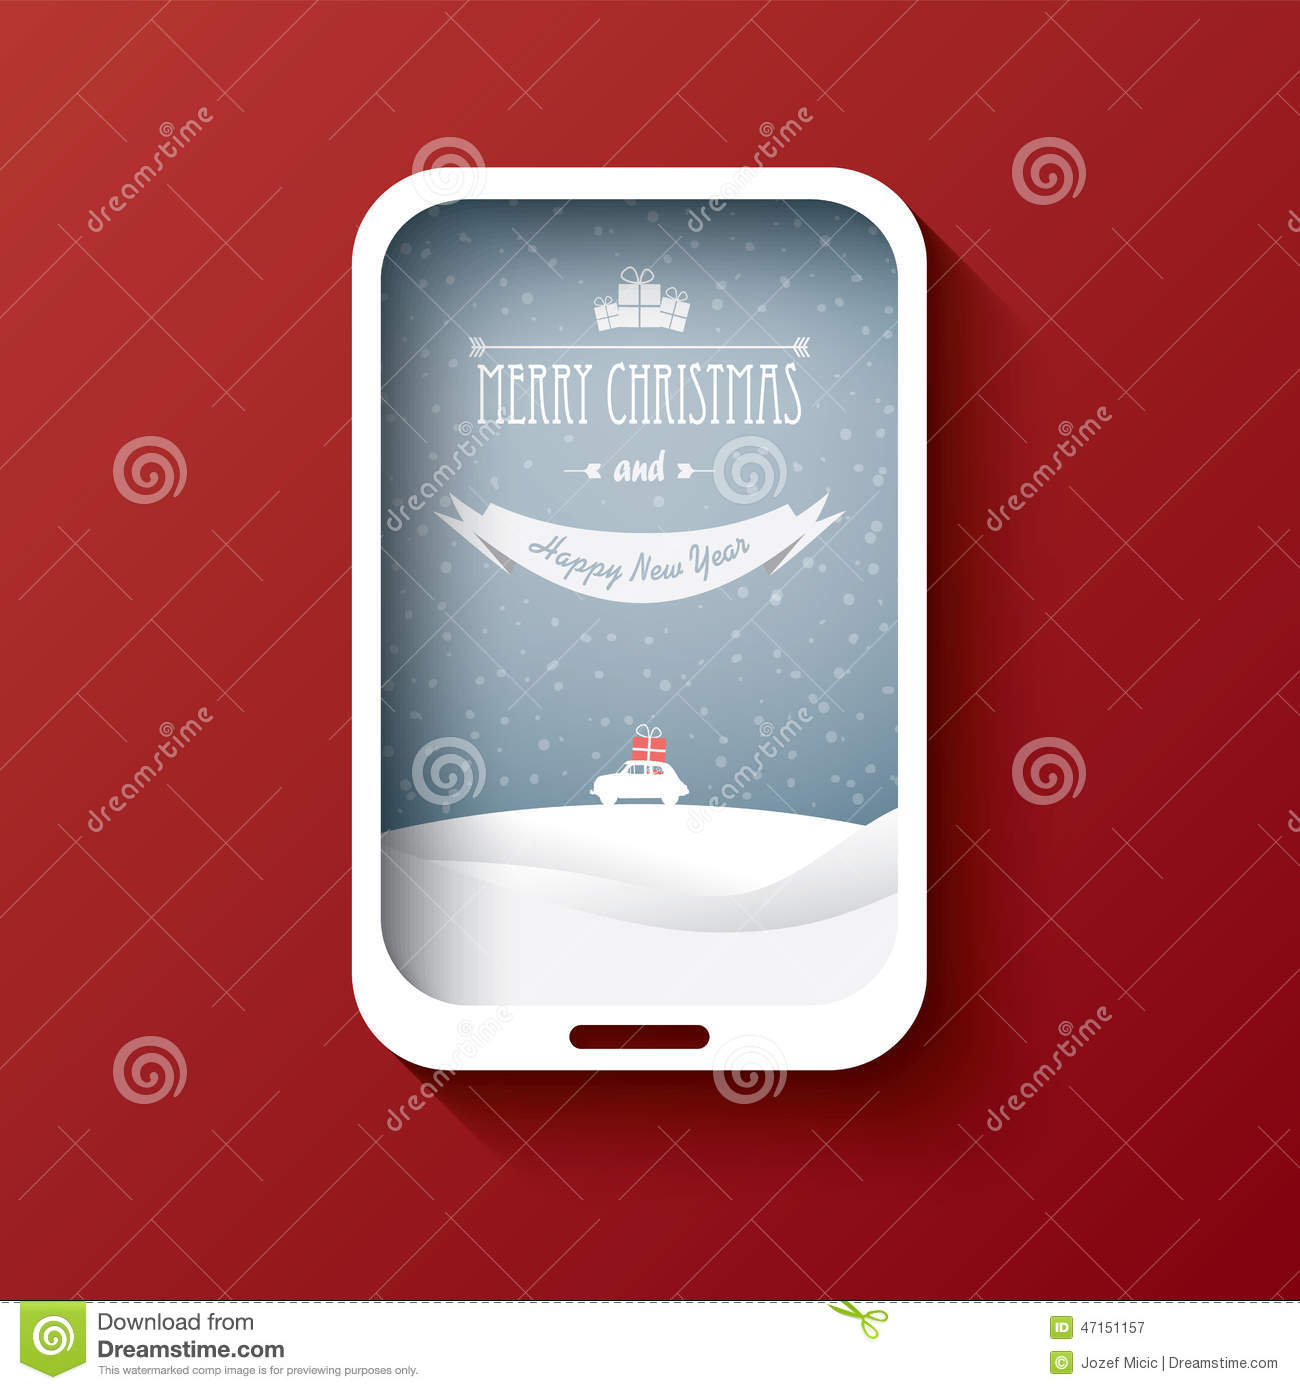 Creative Christmas Card Design With Smartphone And Stock Vector